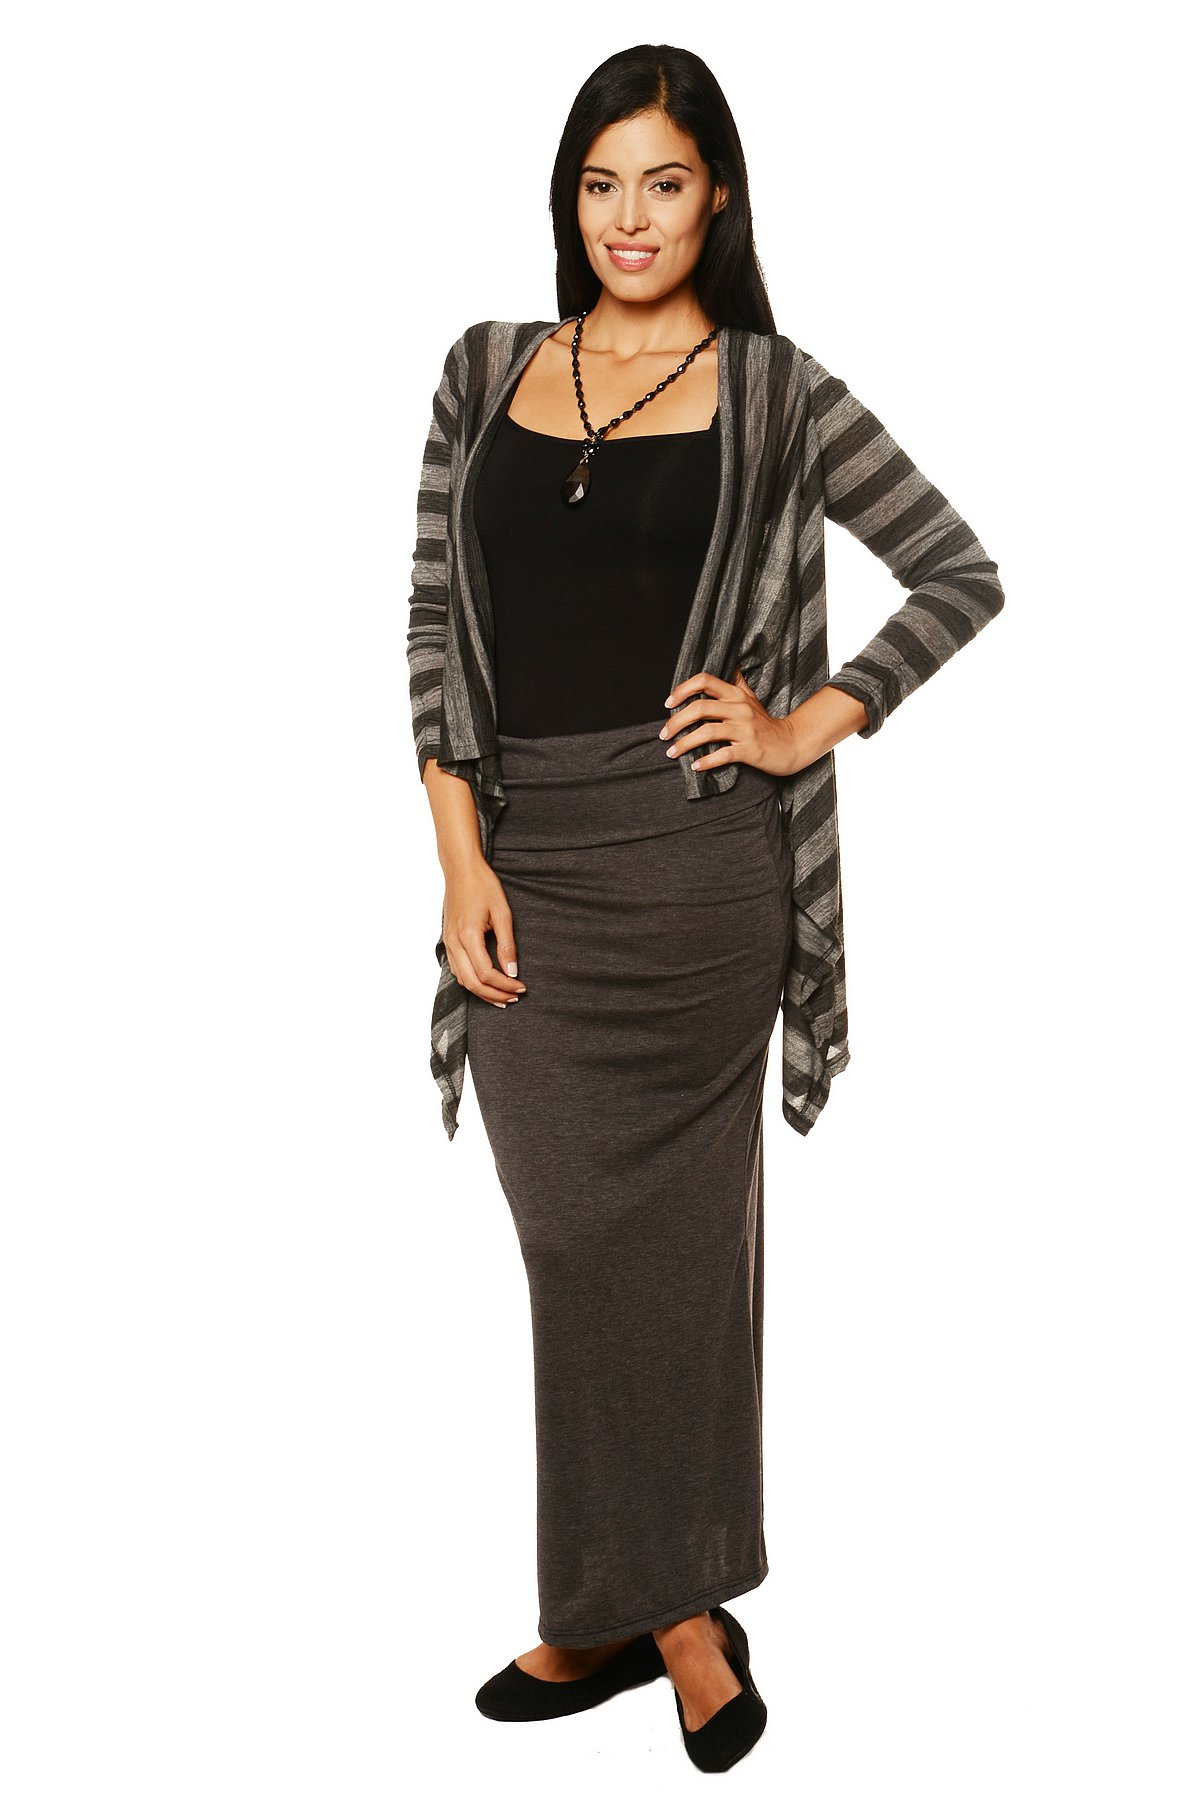 24/7 Comfort Apparel Women's Casual Charcoal Printed Shrug PartNumber: 3ZZVA77172312P MfgPartNumber: 316HST